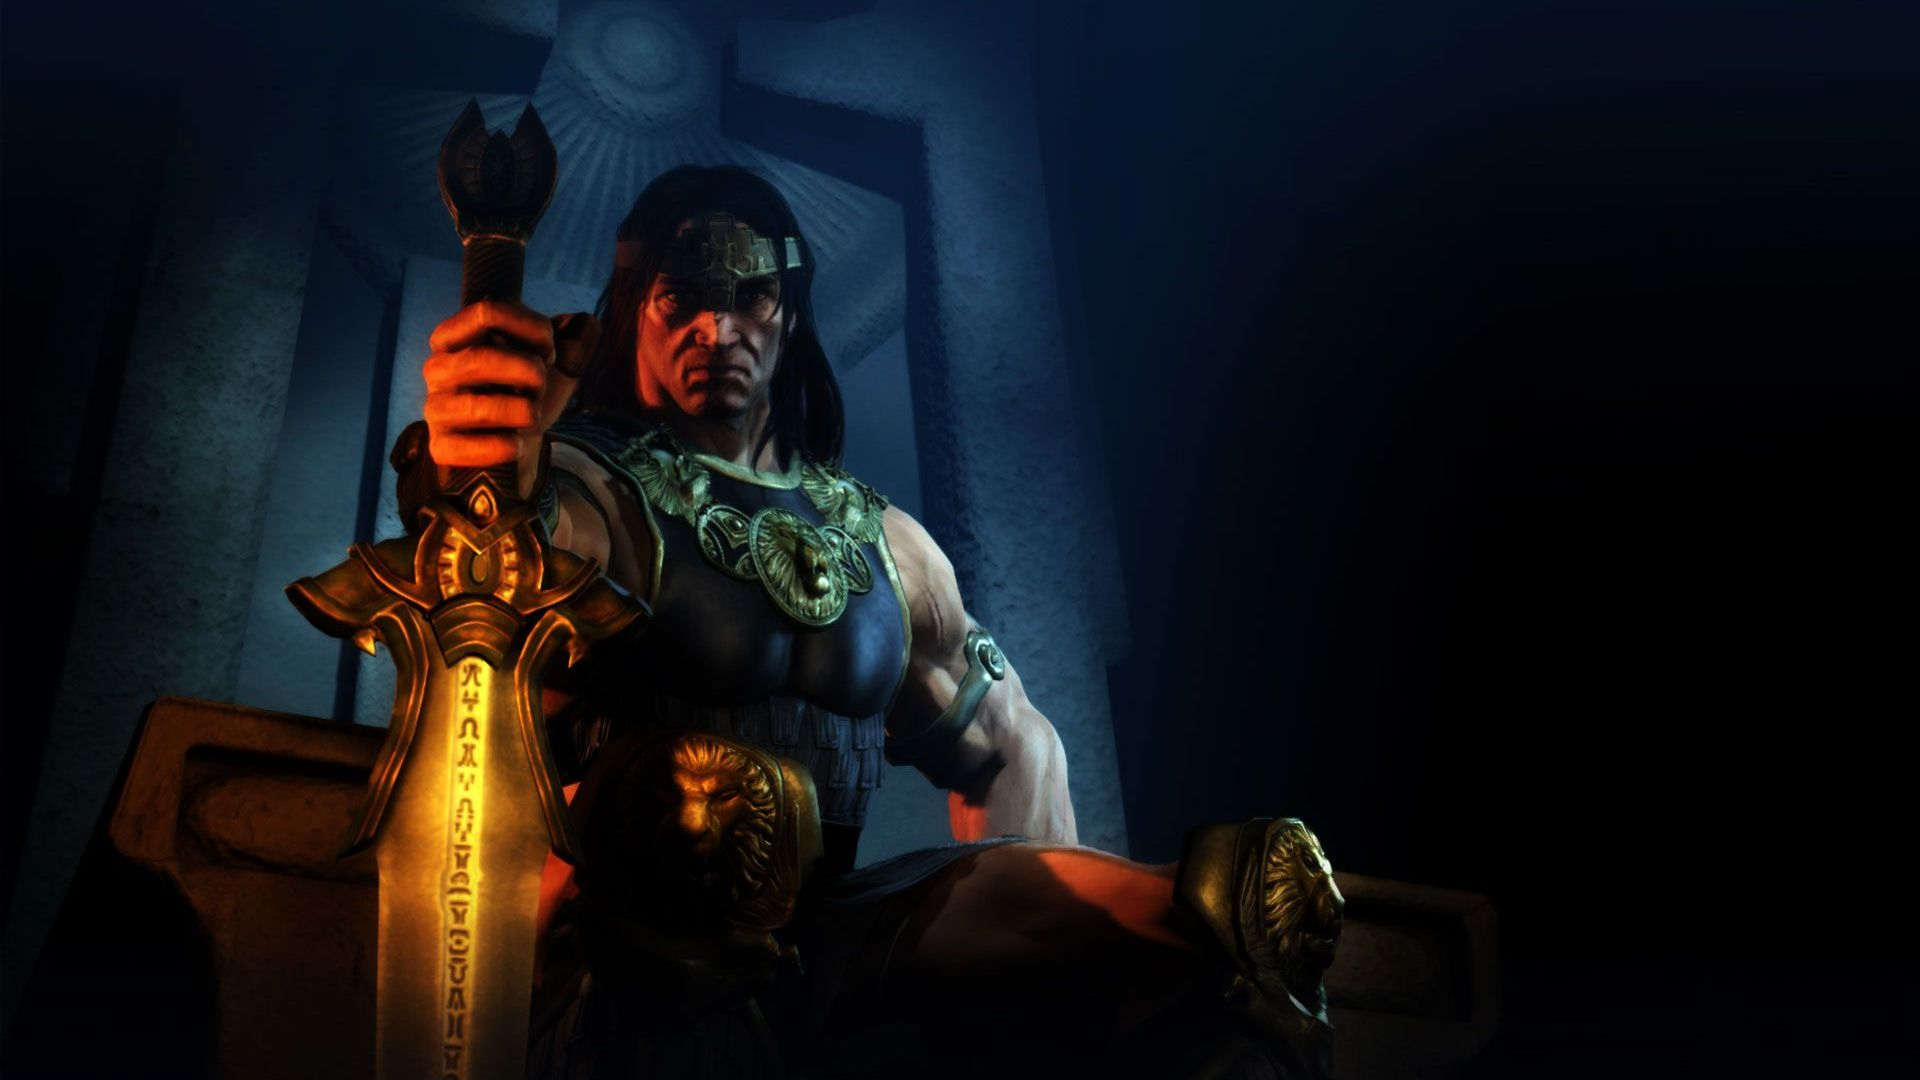 Age of Conan wallpaper 20159 1920x1080